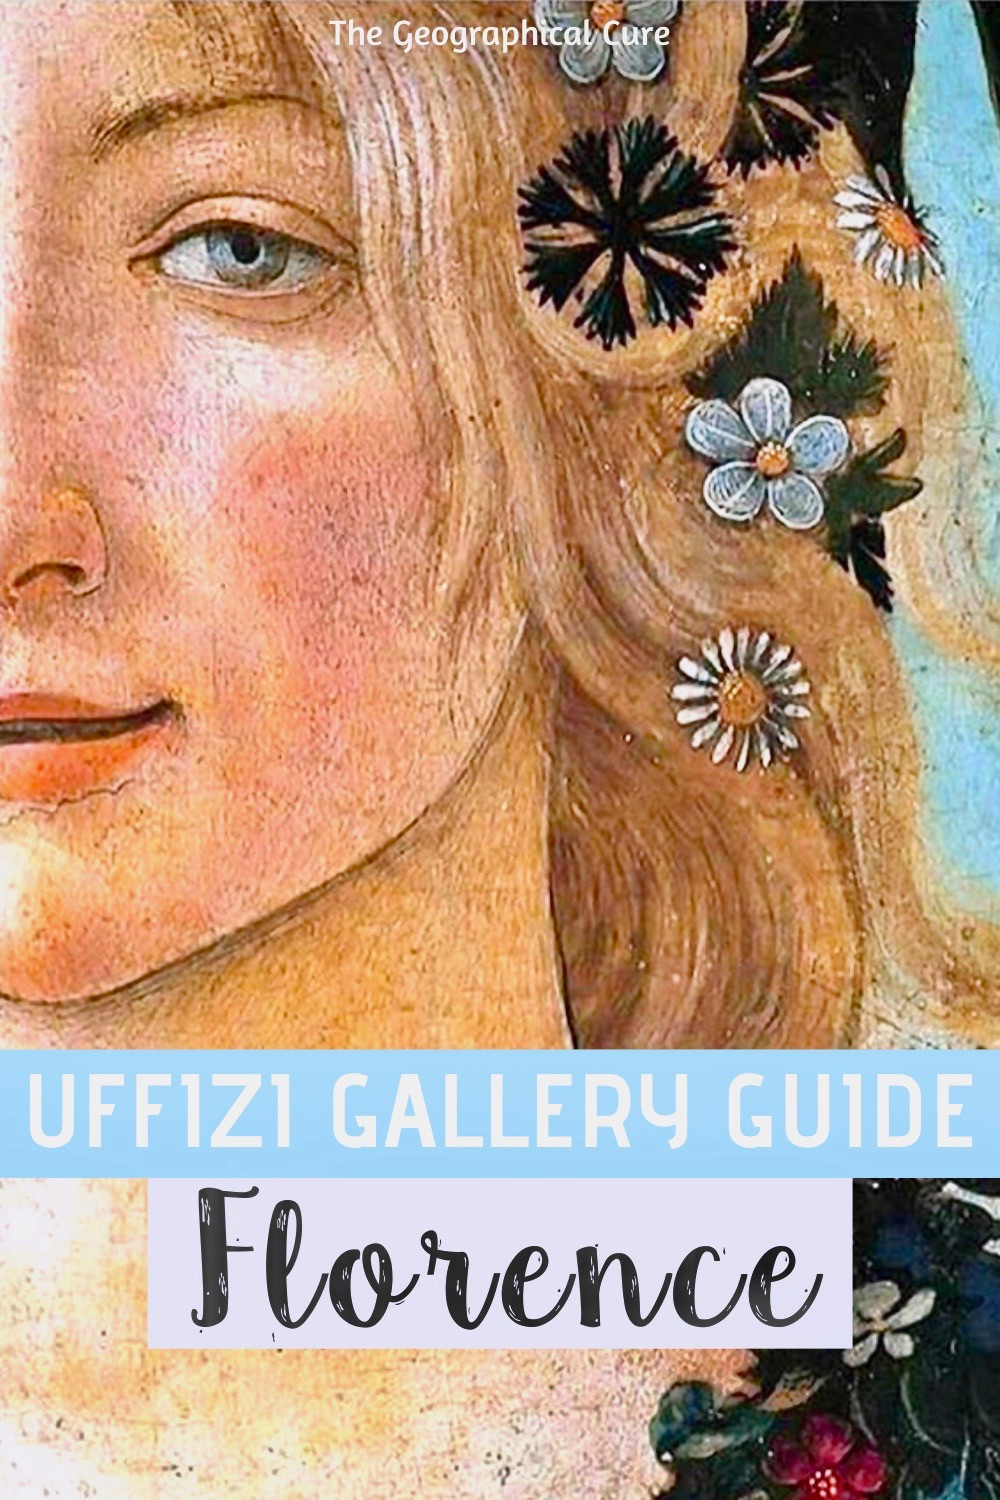 complete guide to the Uffizi Gallery in Florence Italy, with must see masterpieces and tips for visiting